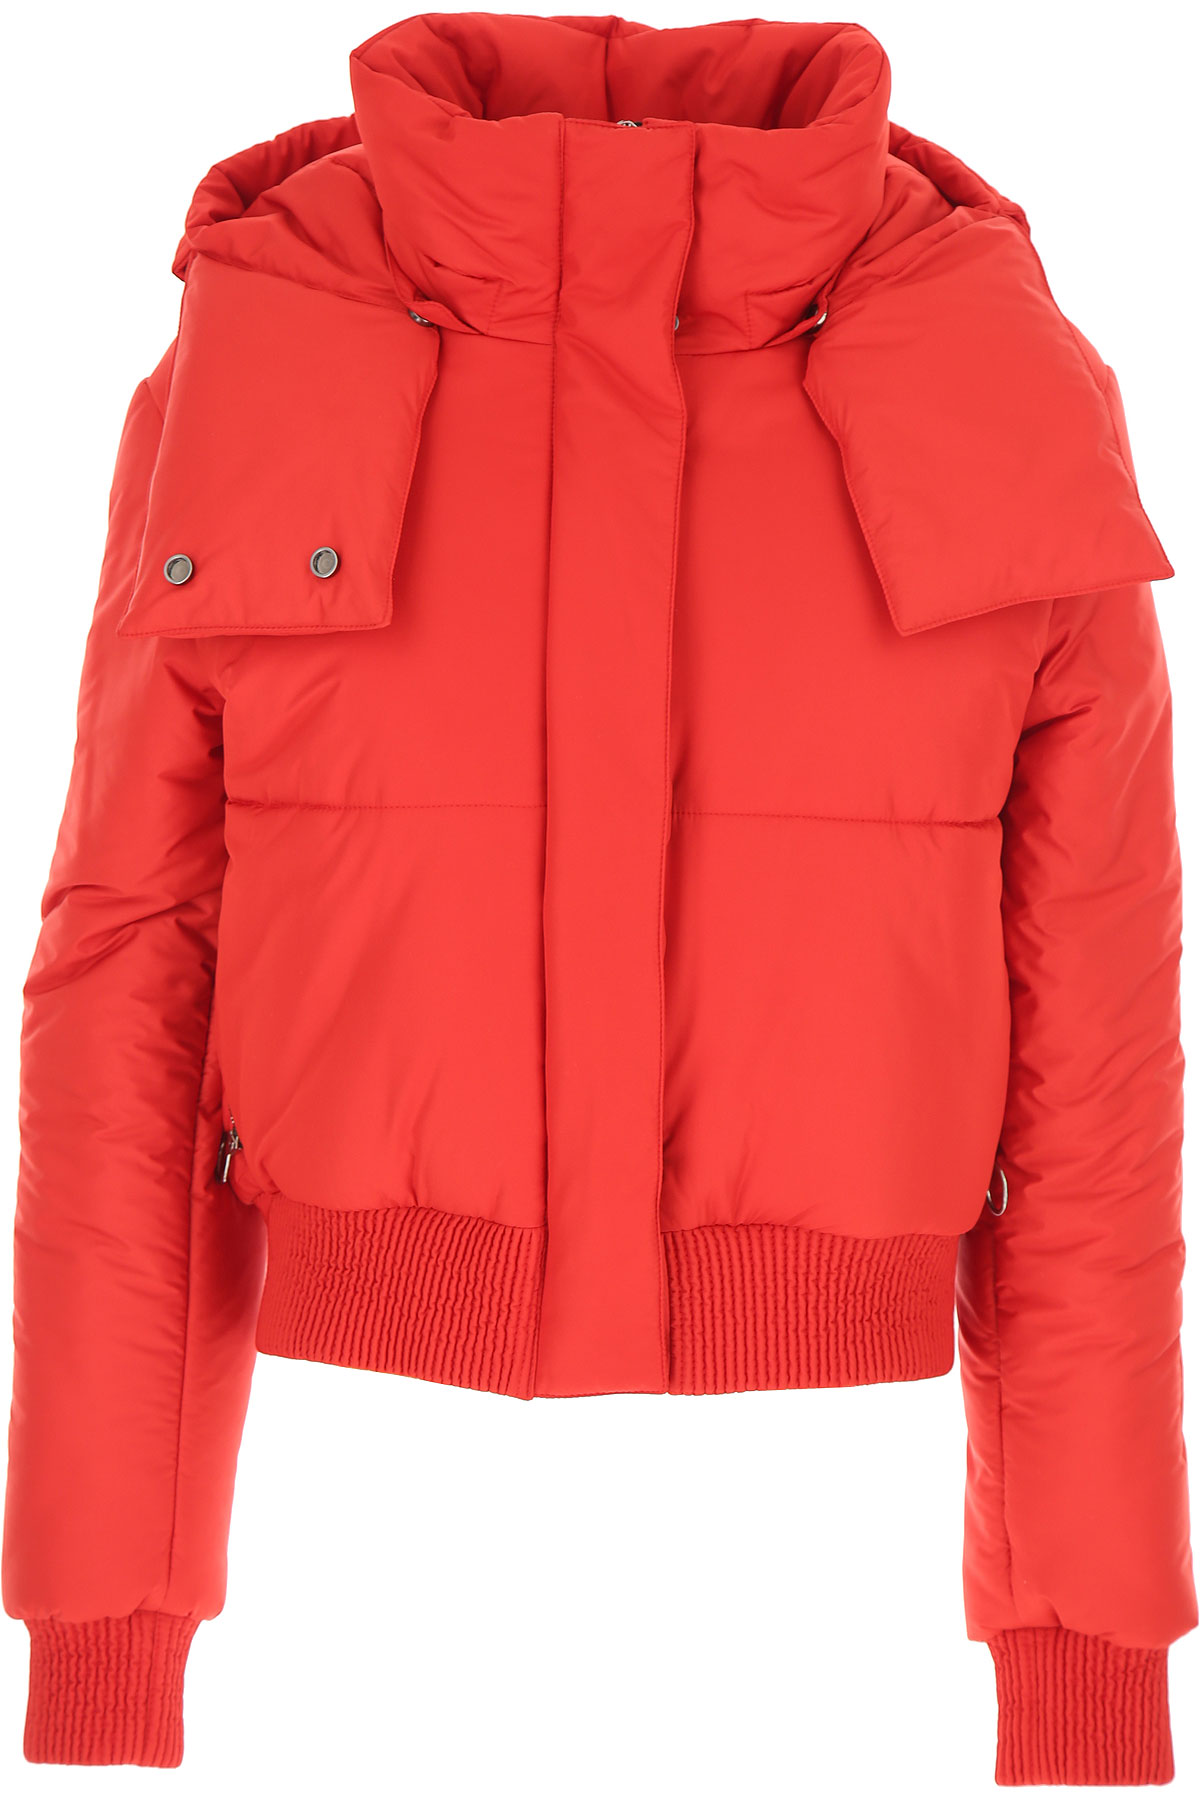 Off-White Virgil Abloh Down Jacket for Women, Puffer Ski Jacket On Sale, Red, polyestere, 2019, 2 4 6